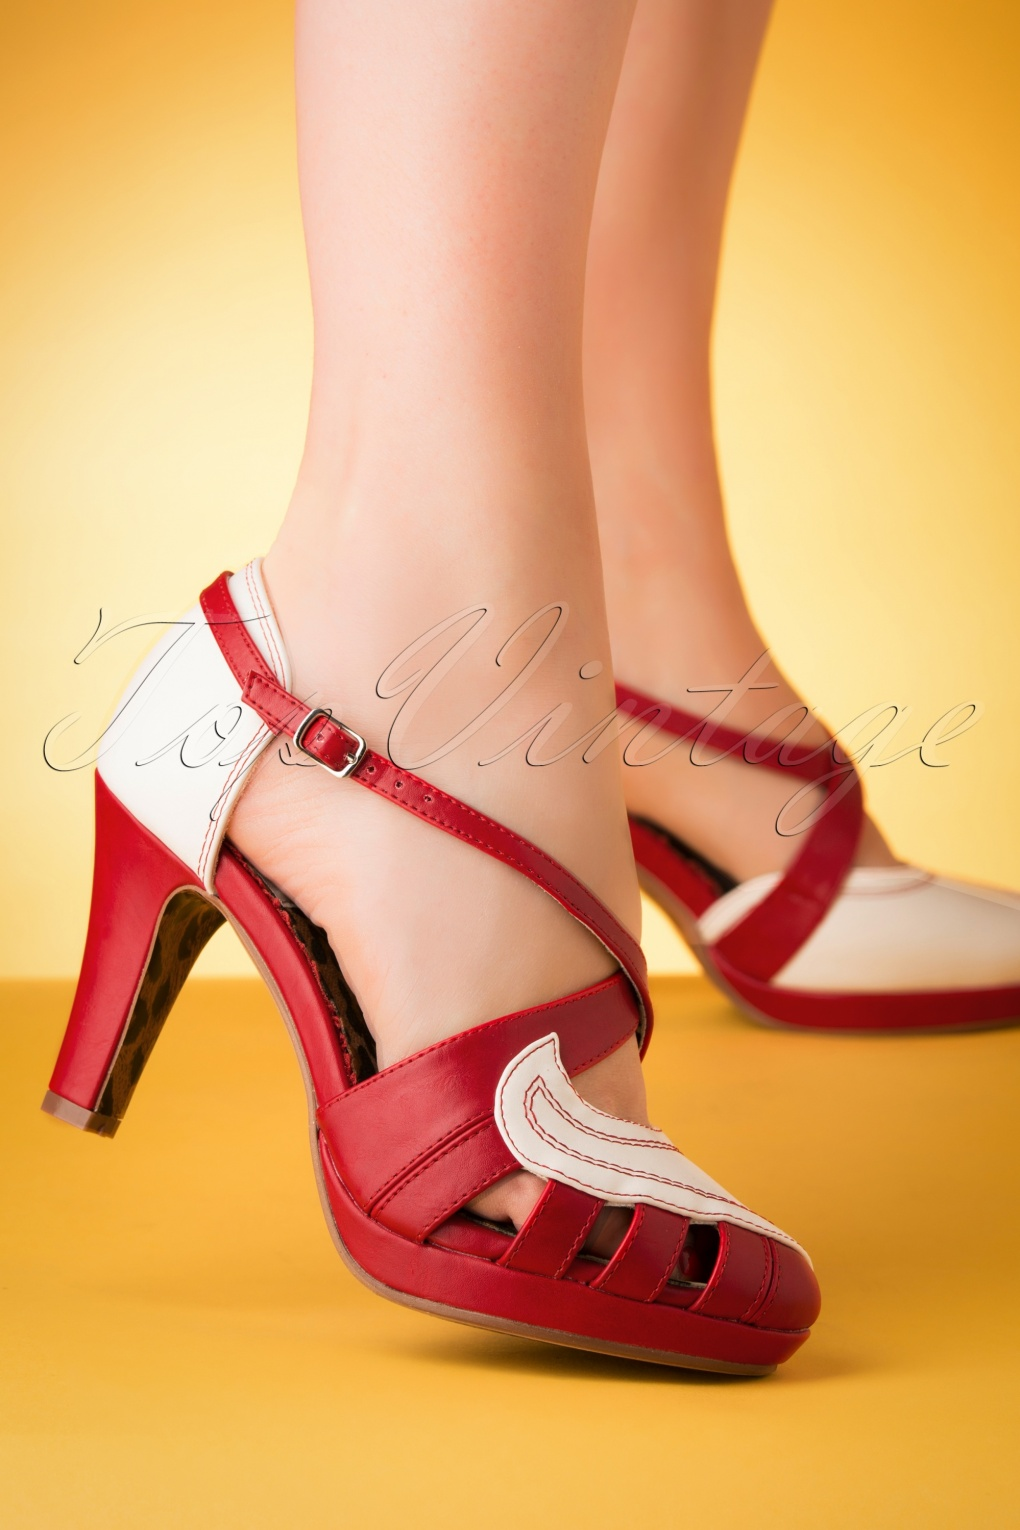 1950s Shoe Styles: Heels, Flats, Sandals, Saddles Shoes 50s Angie Pumps in White and Red �66.44 AT vintagedancer.com